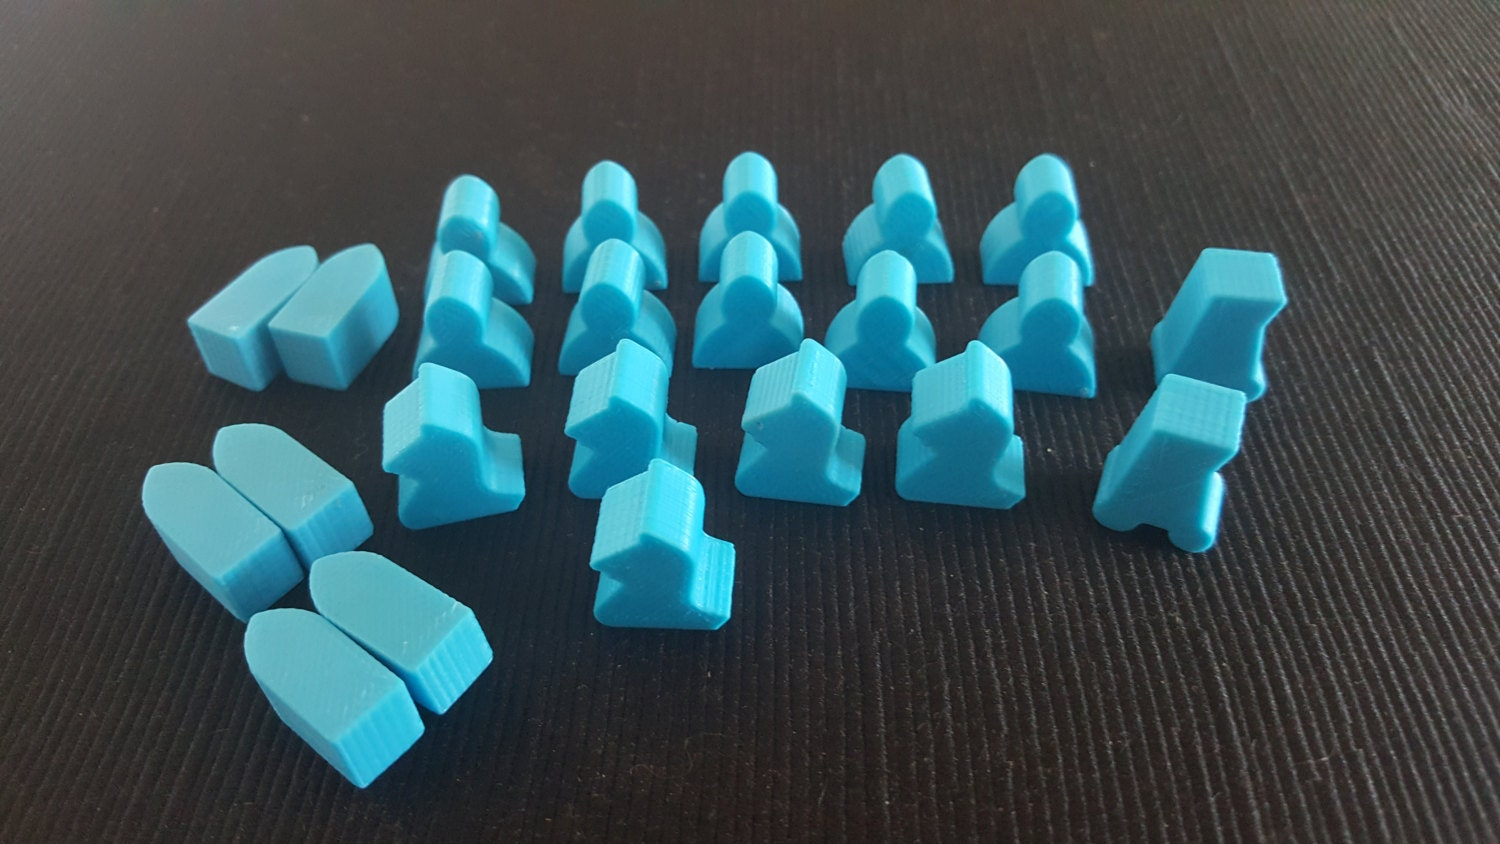 Game of Thrones board game pieces second by